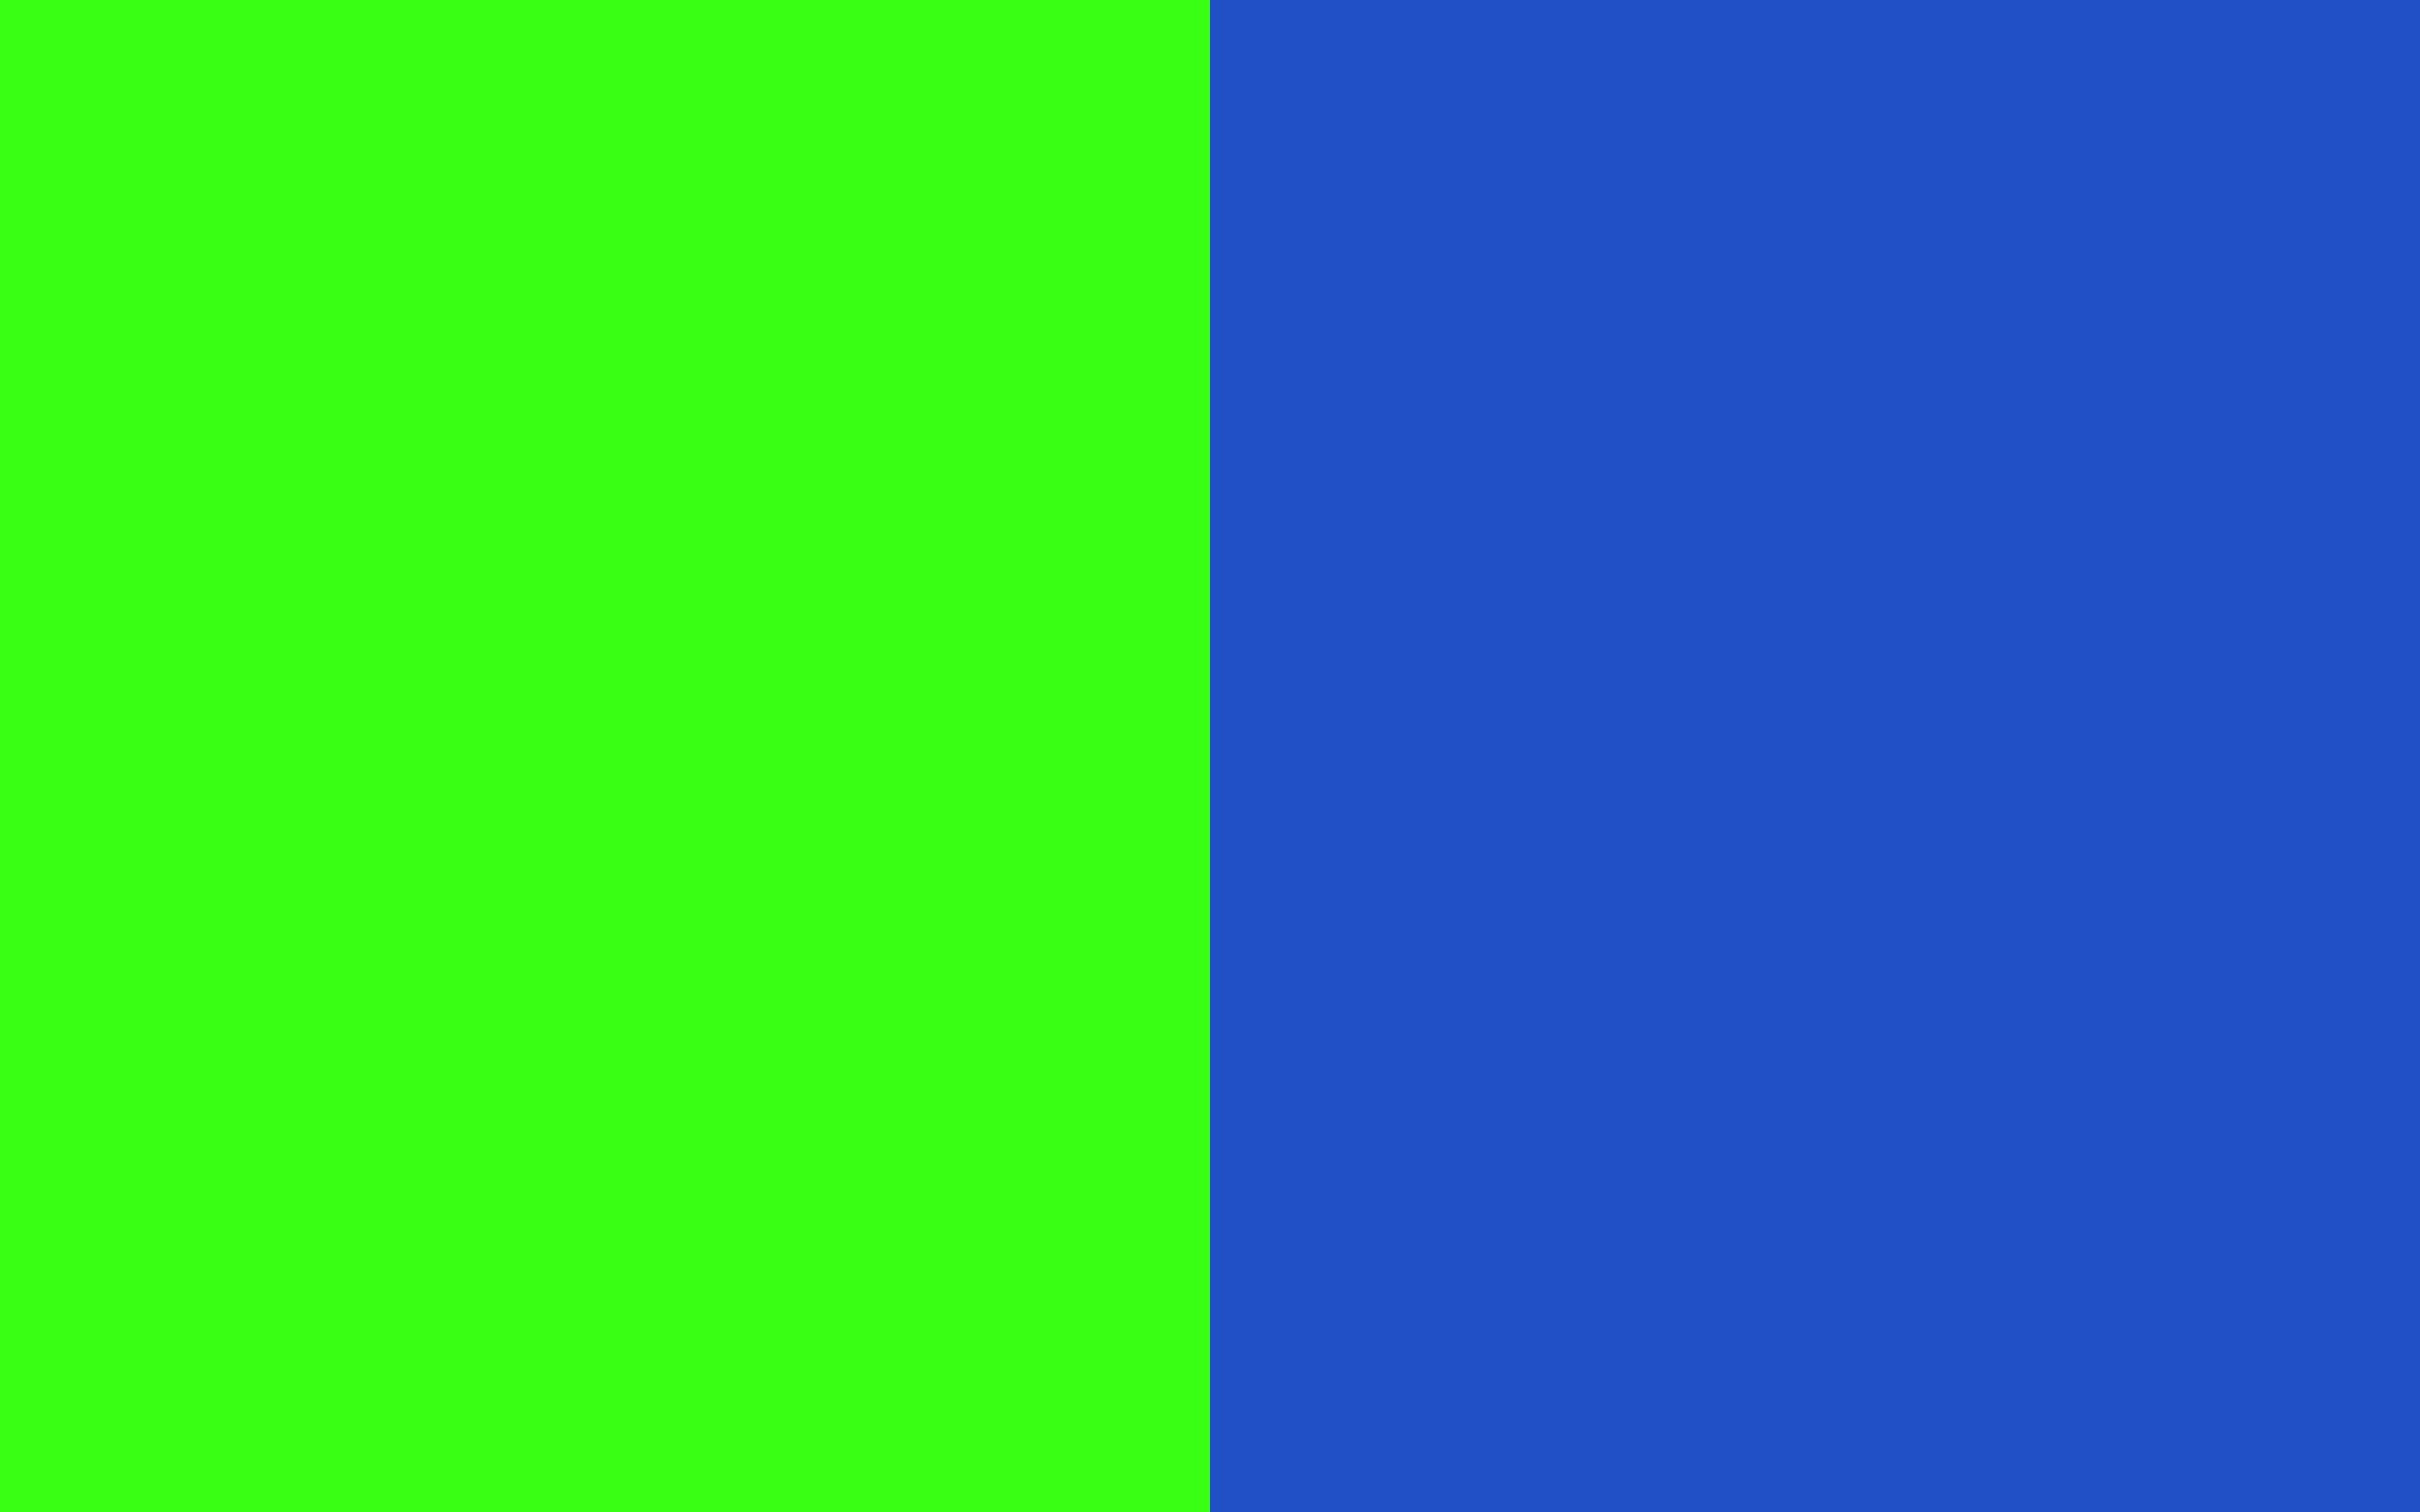 Blue and Neon Green Backgrounds 2560x1600